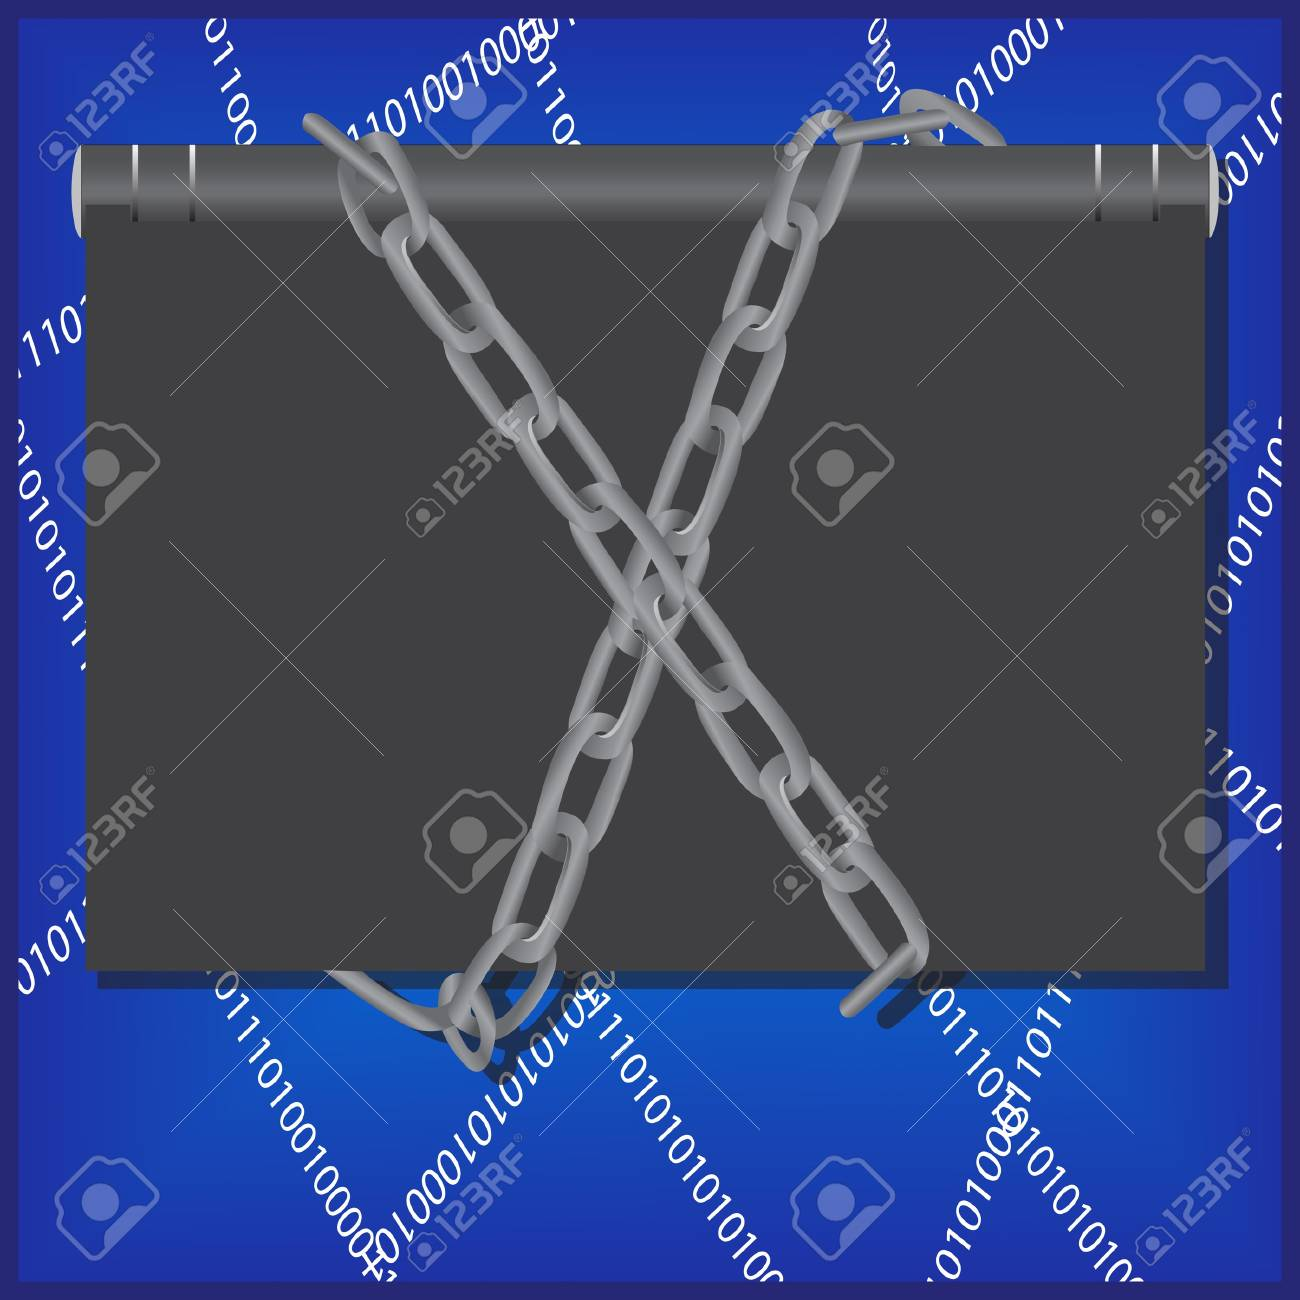 ensorship concept with notebook, chain and web  Illustration Stock Vector - 16345444